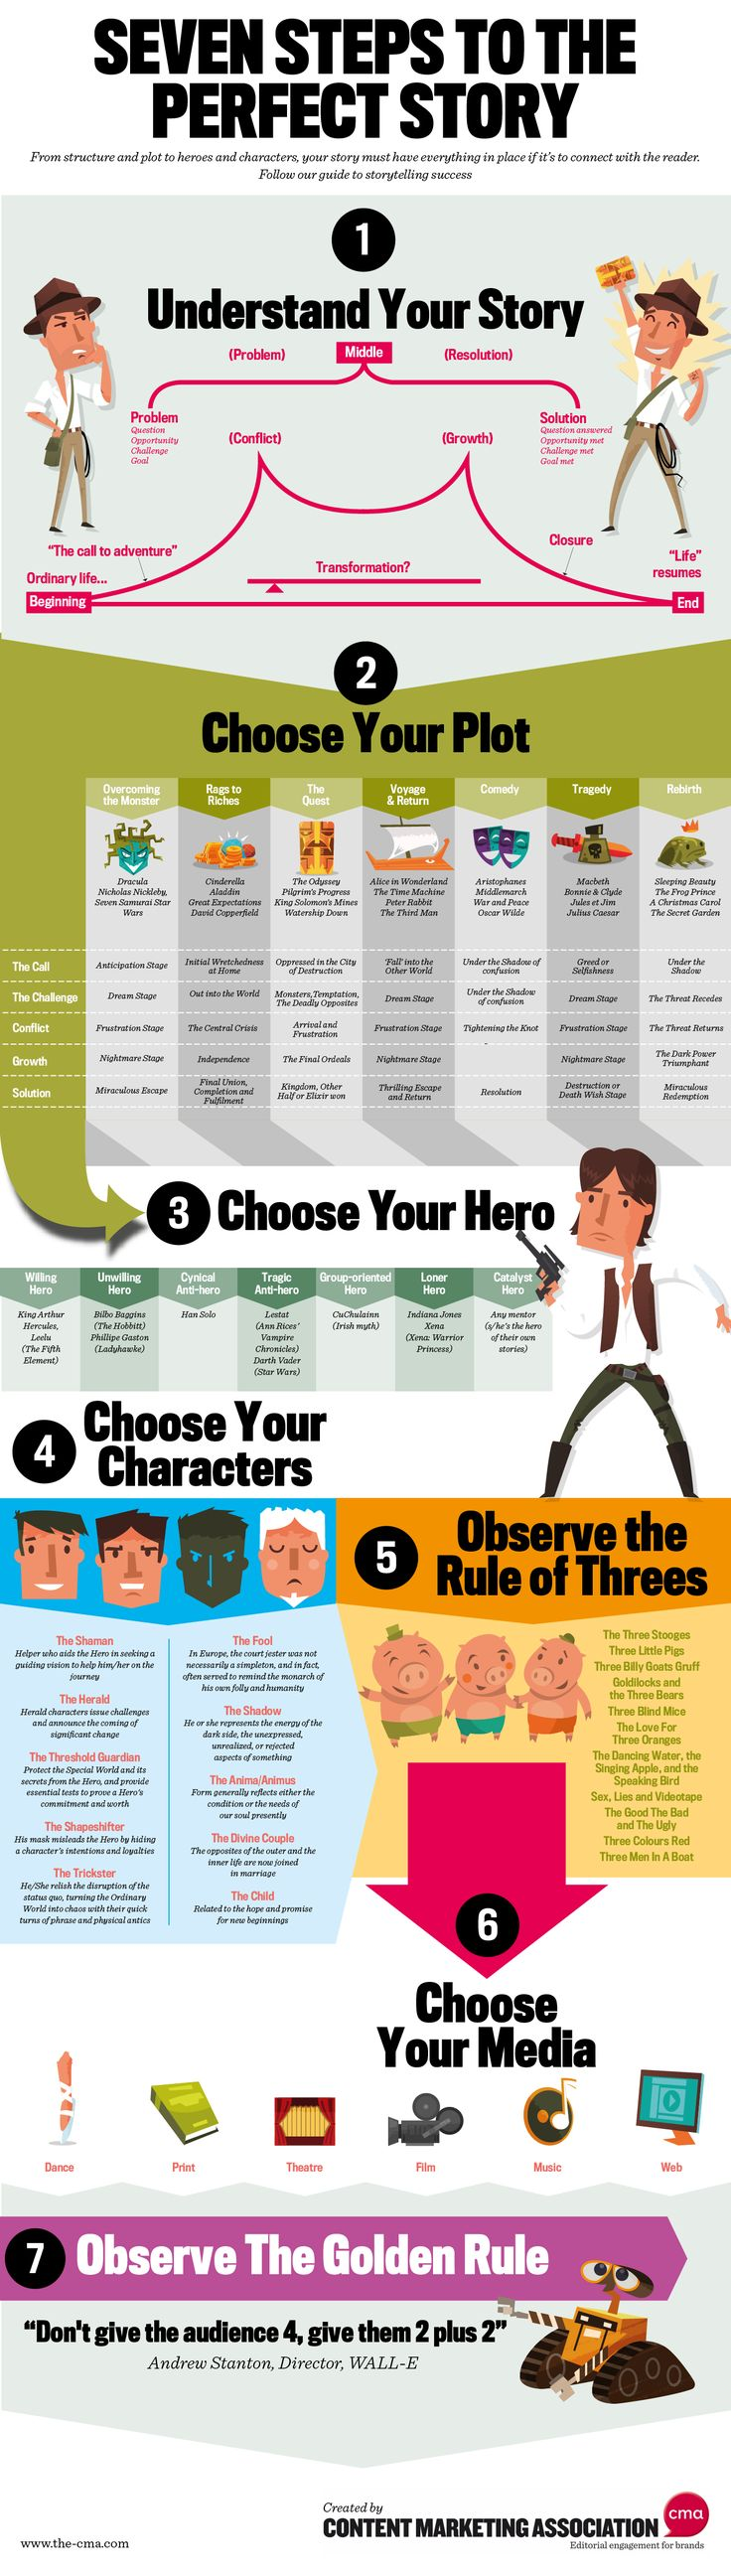 7 Steps To the Perfect Story | One of the best infographics I've seen for story structure and the writing process